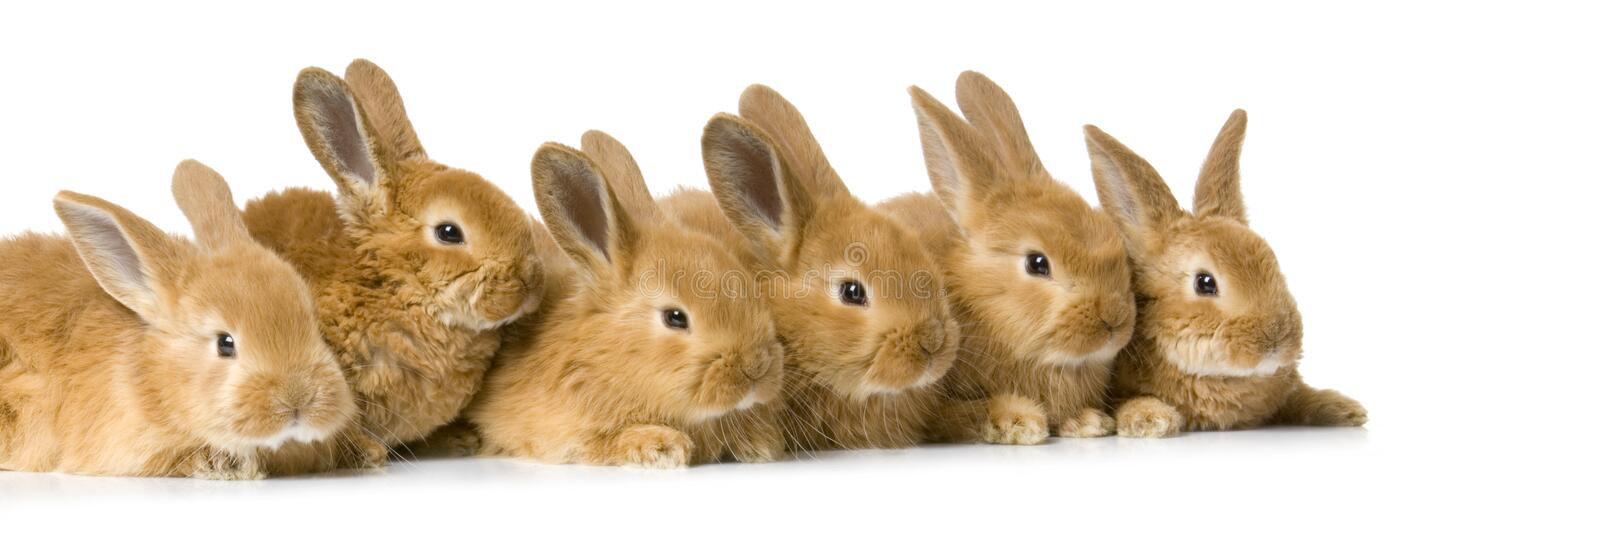 Group of bunnies royalty free stock photography